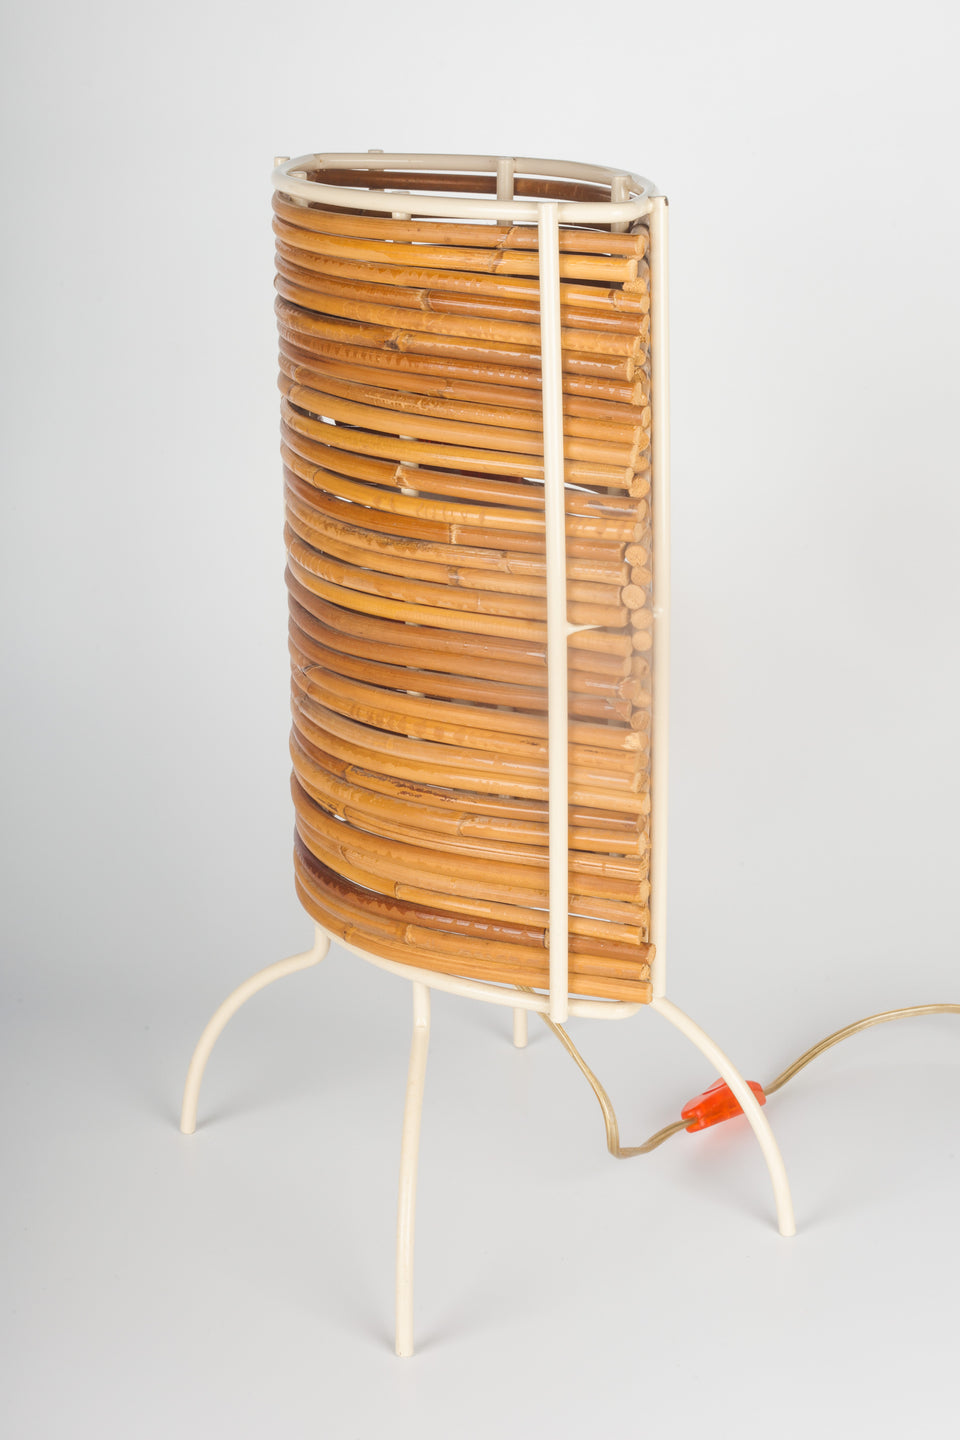 CAMPANA BROTHERS for FONTANA ARTE Bambu Lamp, Ltd. Ed., 2000